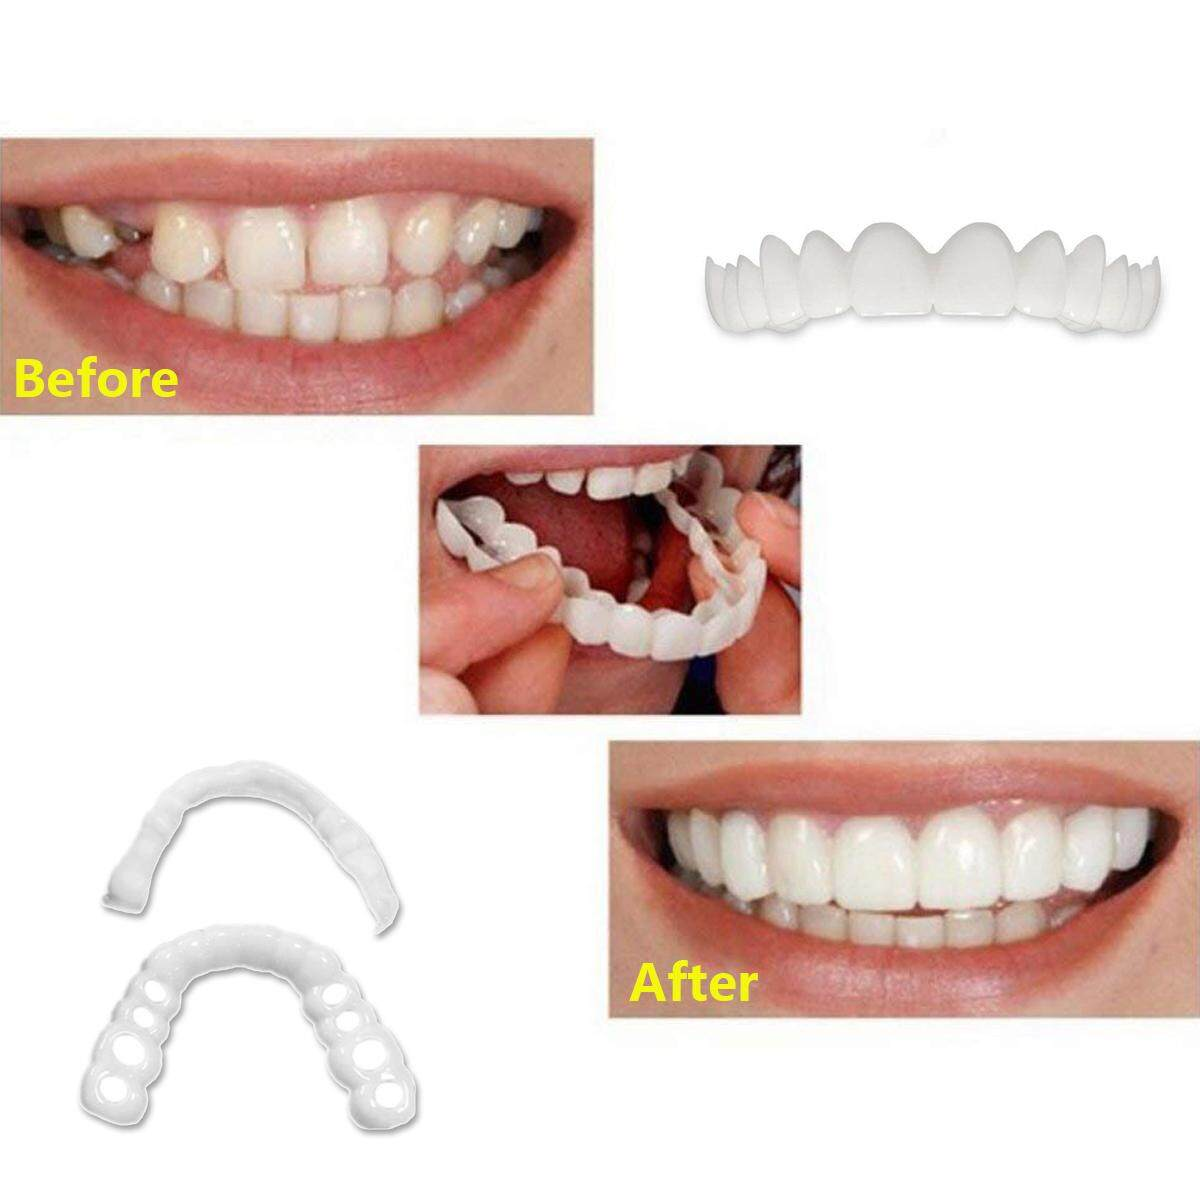 Congratulate, dentures liner plastic strip agree with